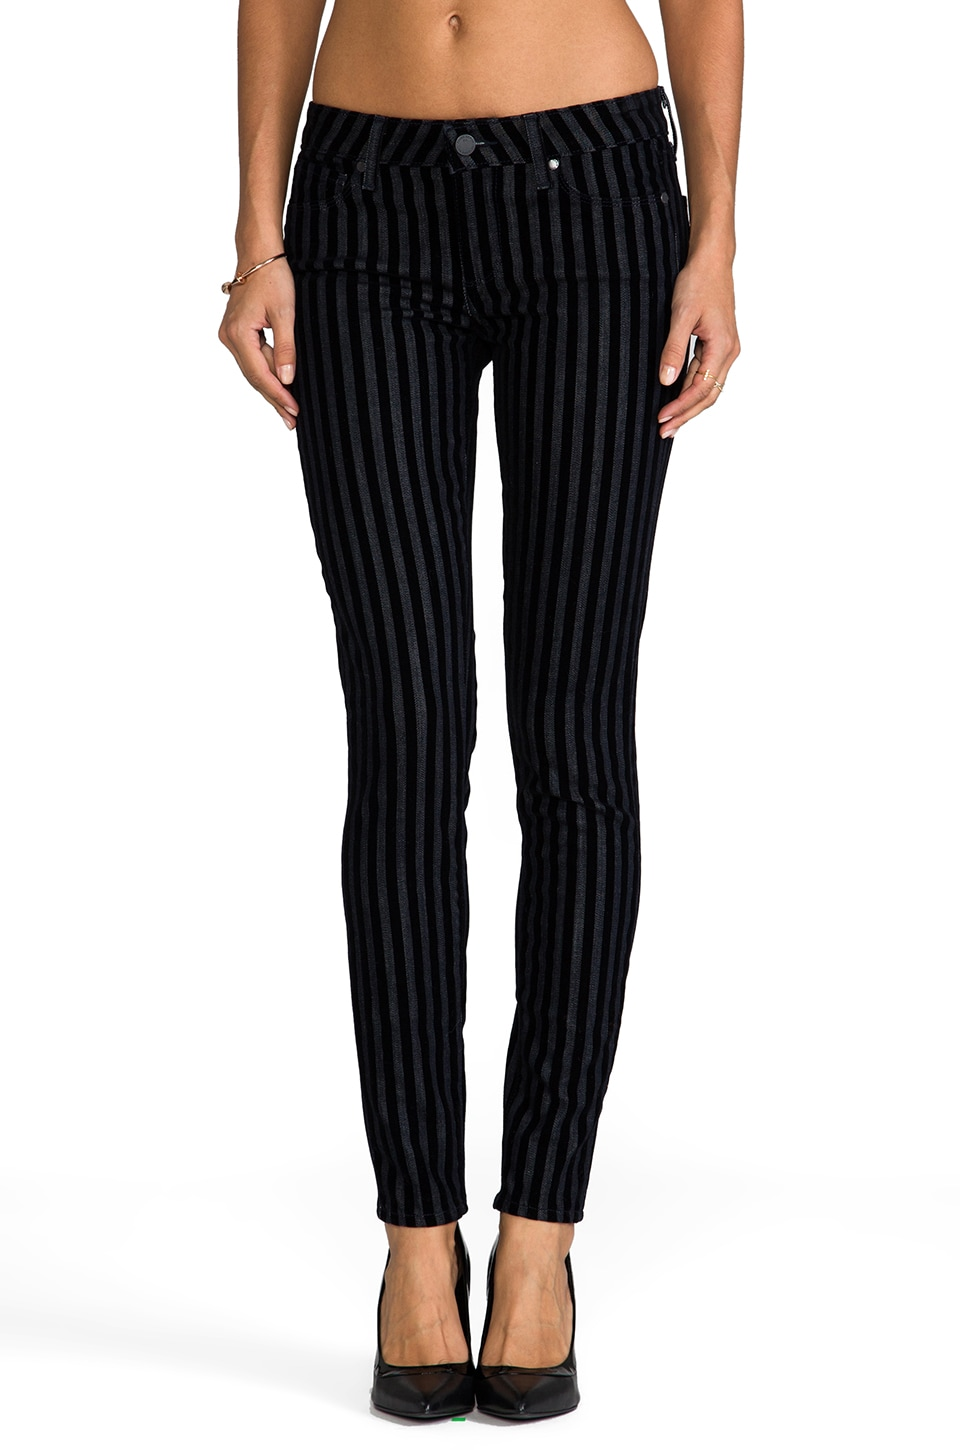 Paige Denim Verdugo Ultra Skinny in Flocked Stripe